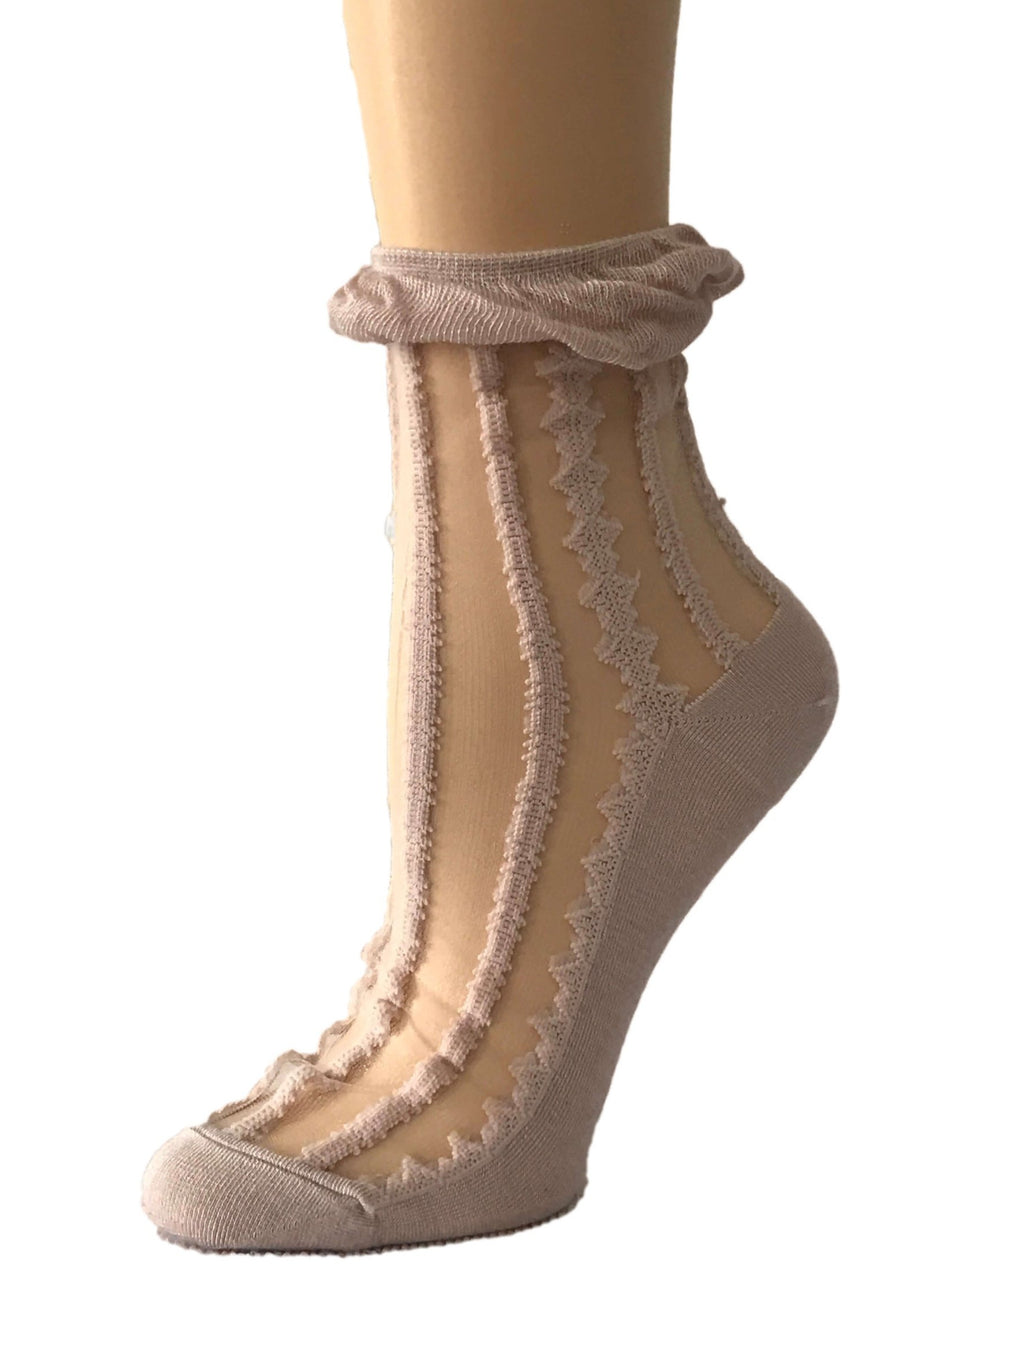 Tea Pink Frill Sheer Socks - Global Trendz Fashion®